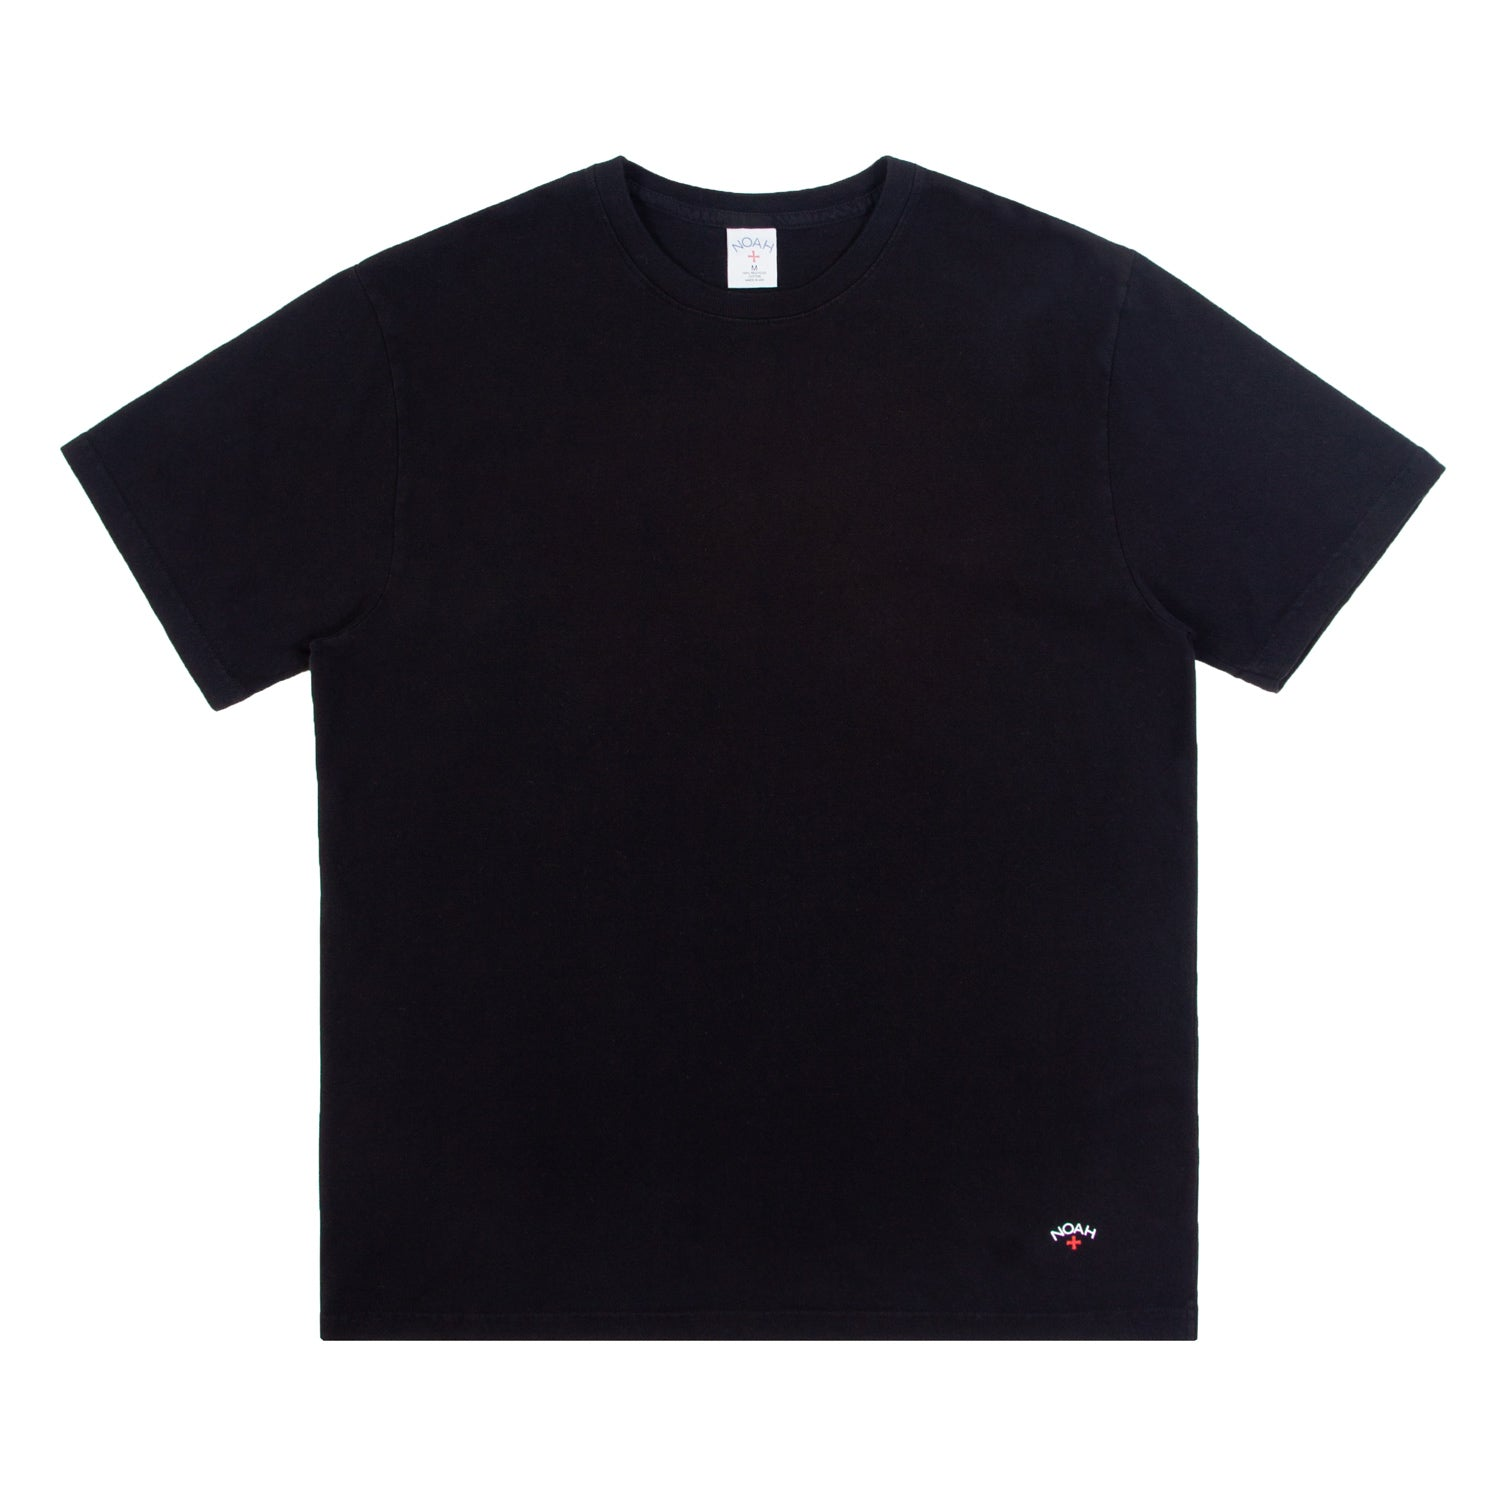 Recycled Cotton Tee